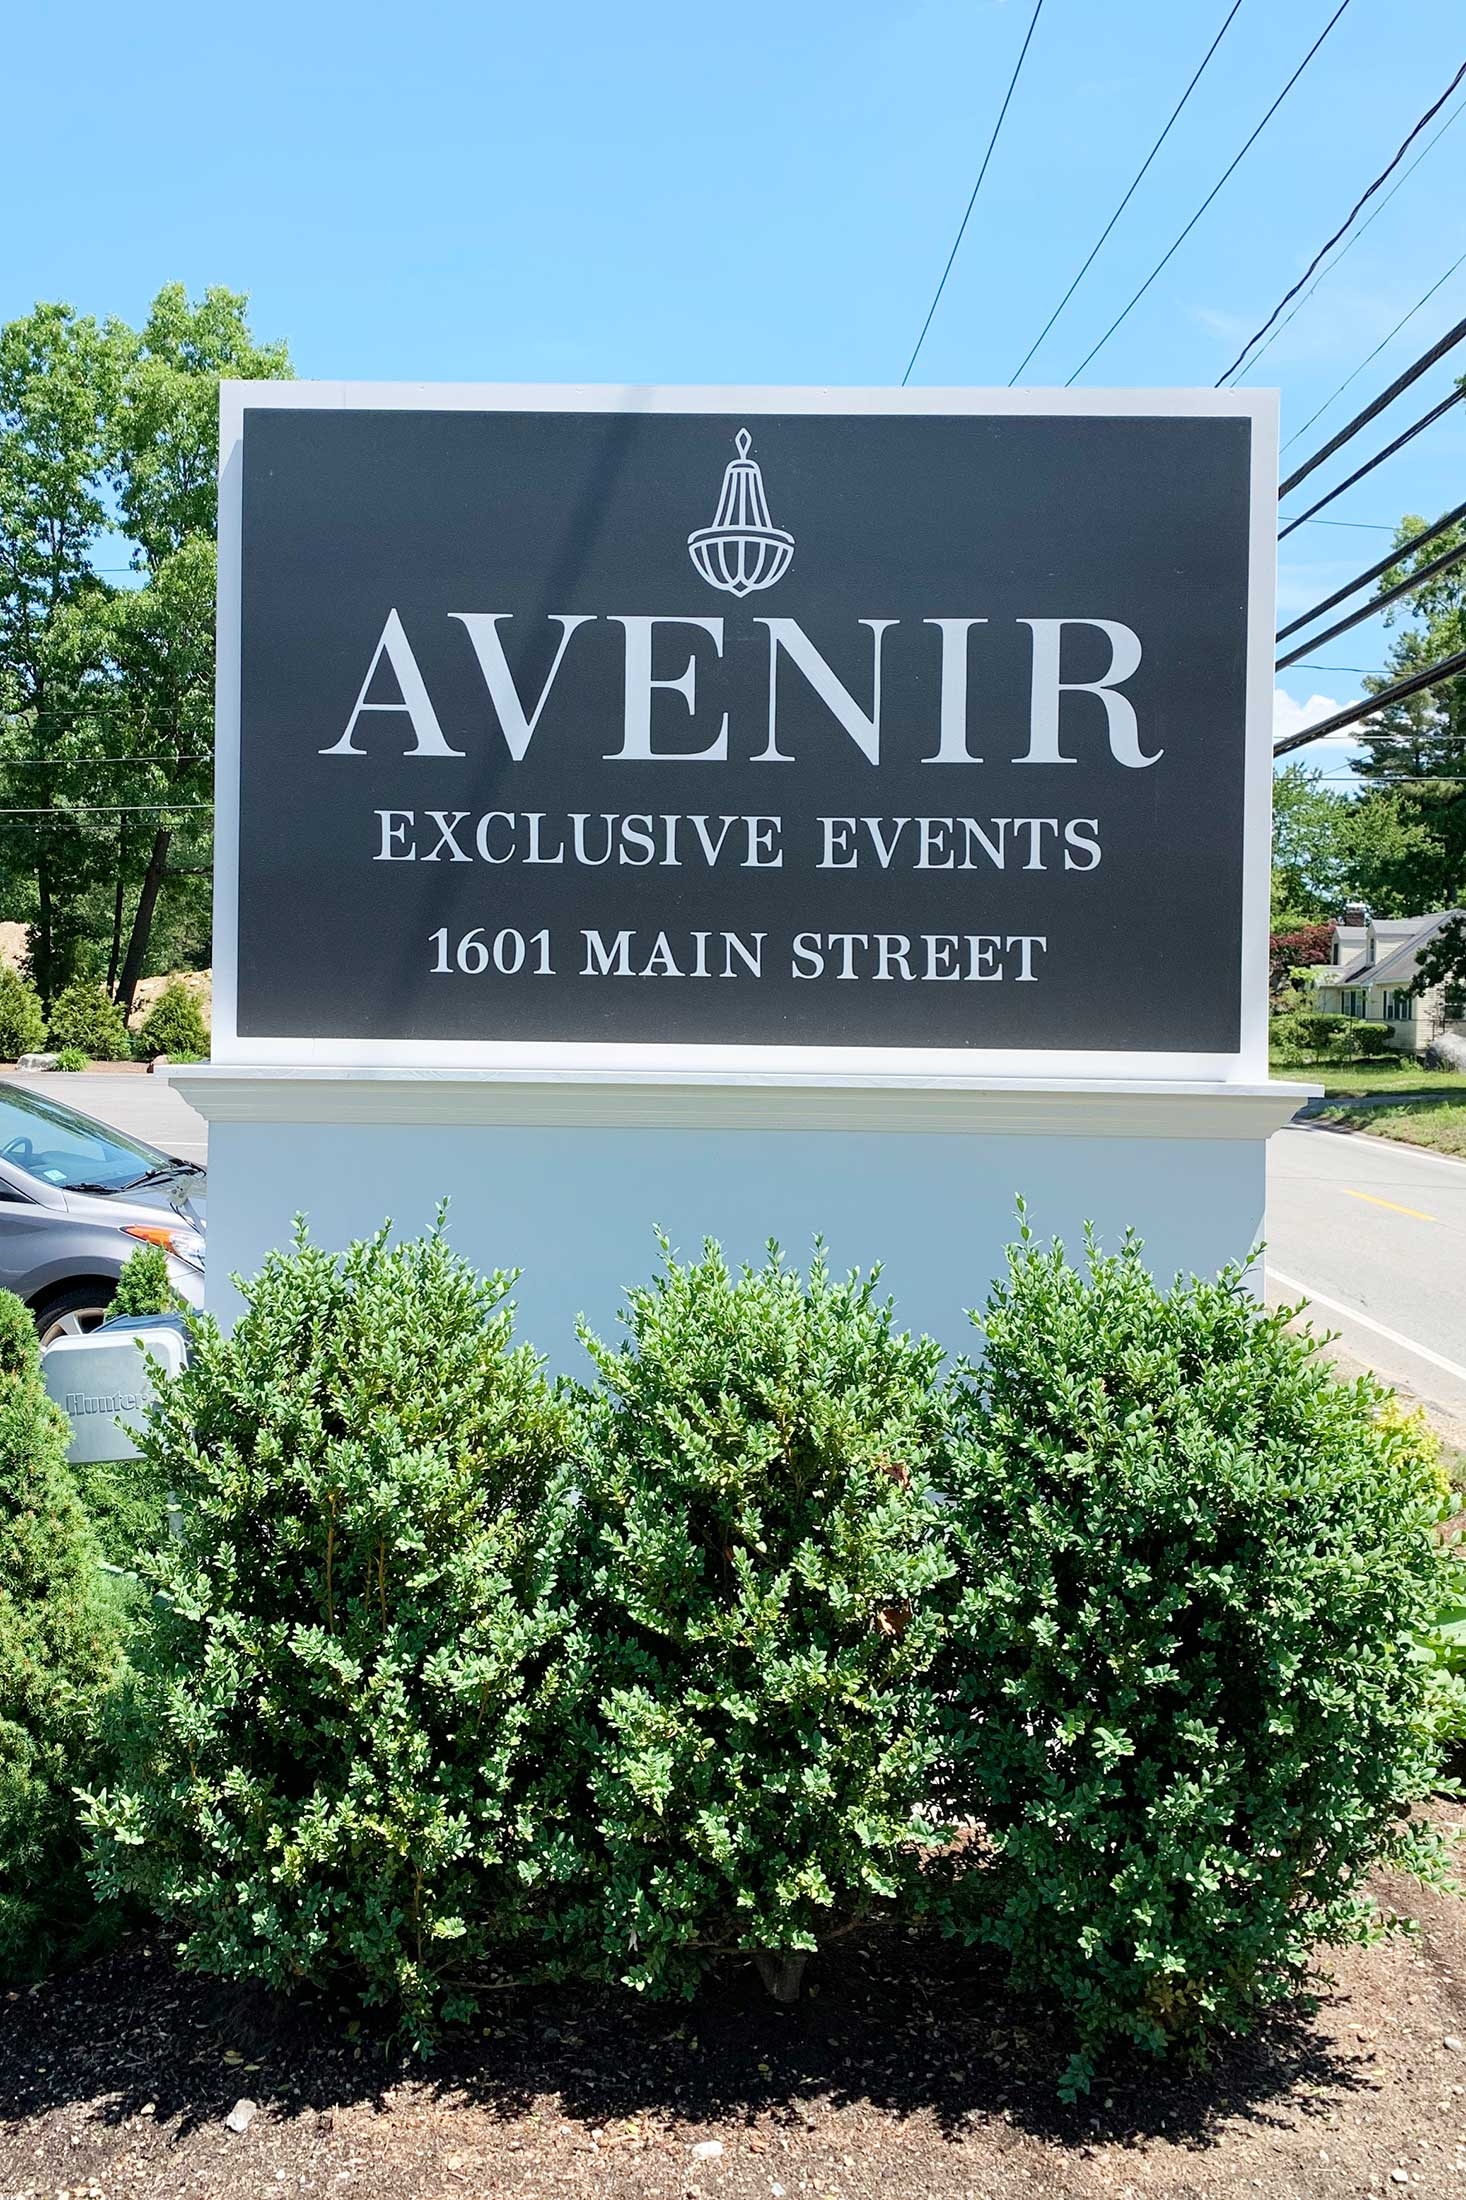 Avenir wedding venue sign from the street